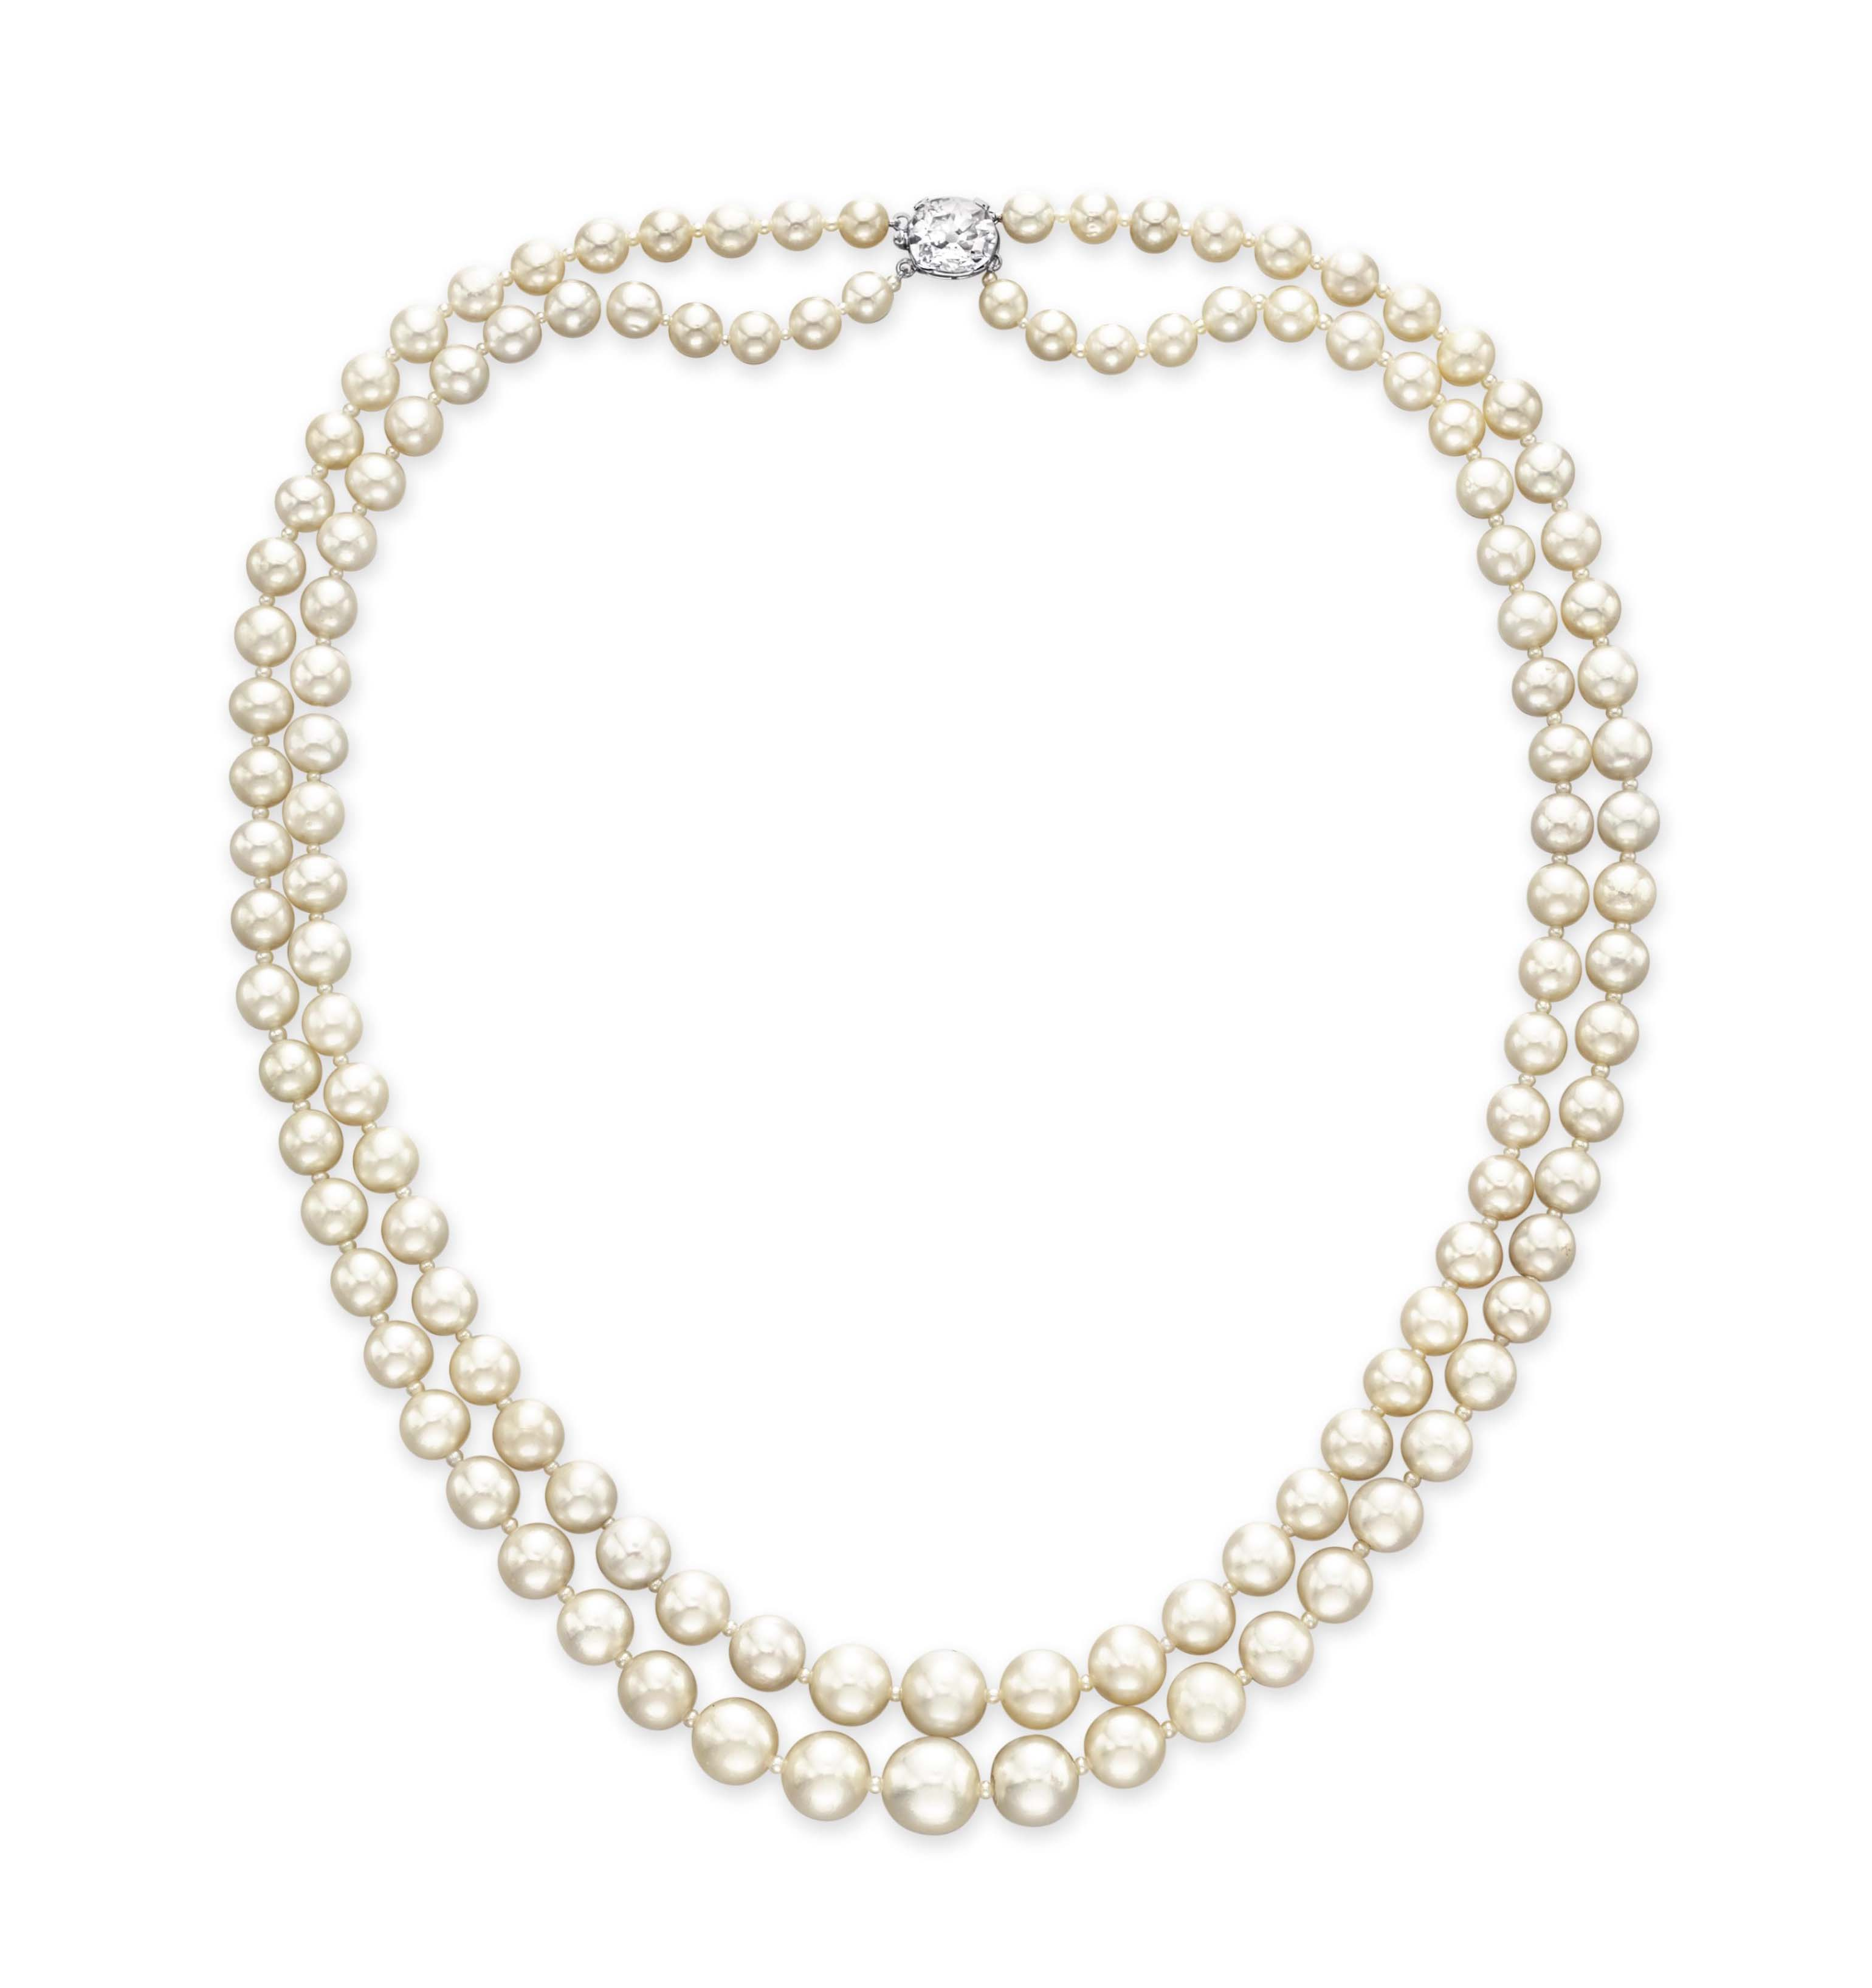 A TWO-STRAND NATURAL PEARL NECKLACE